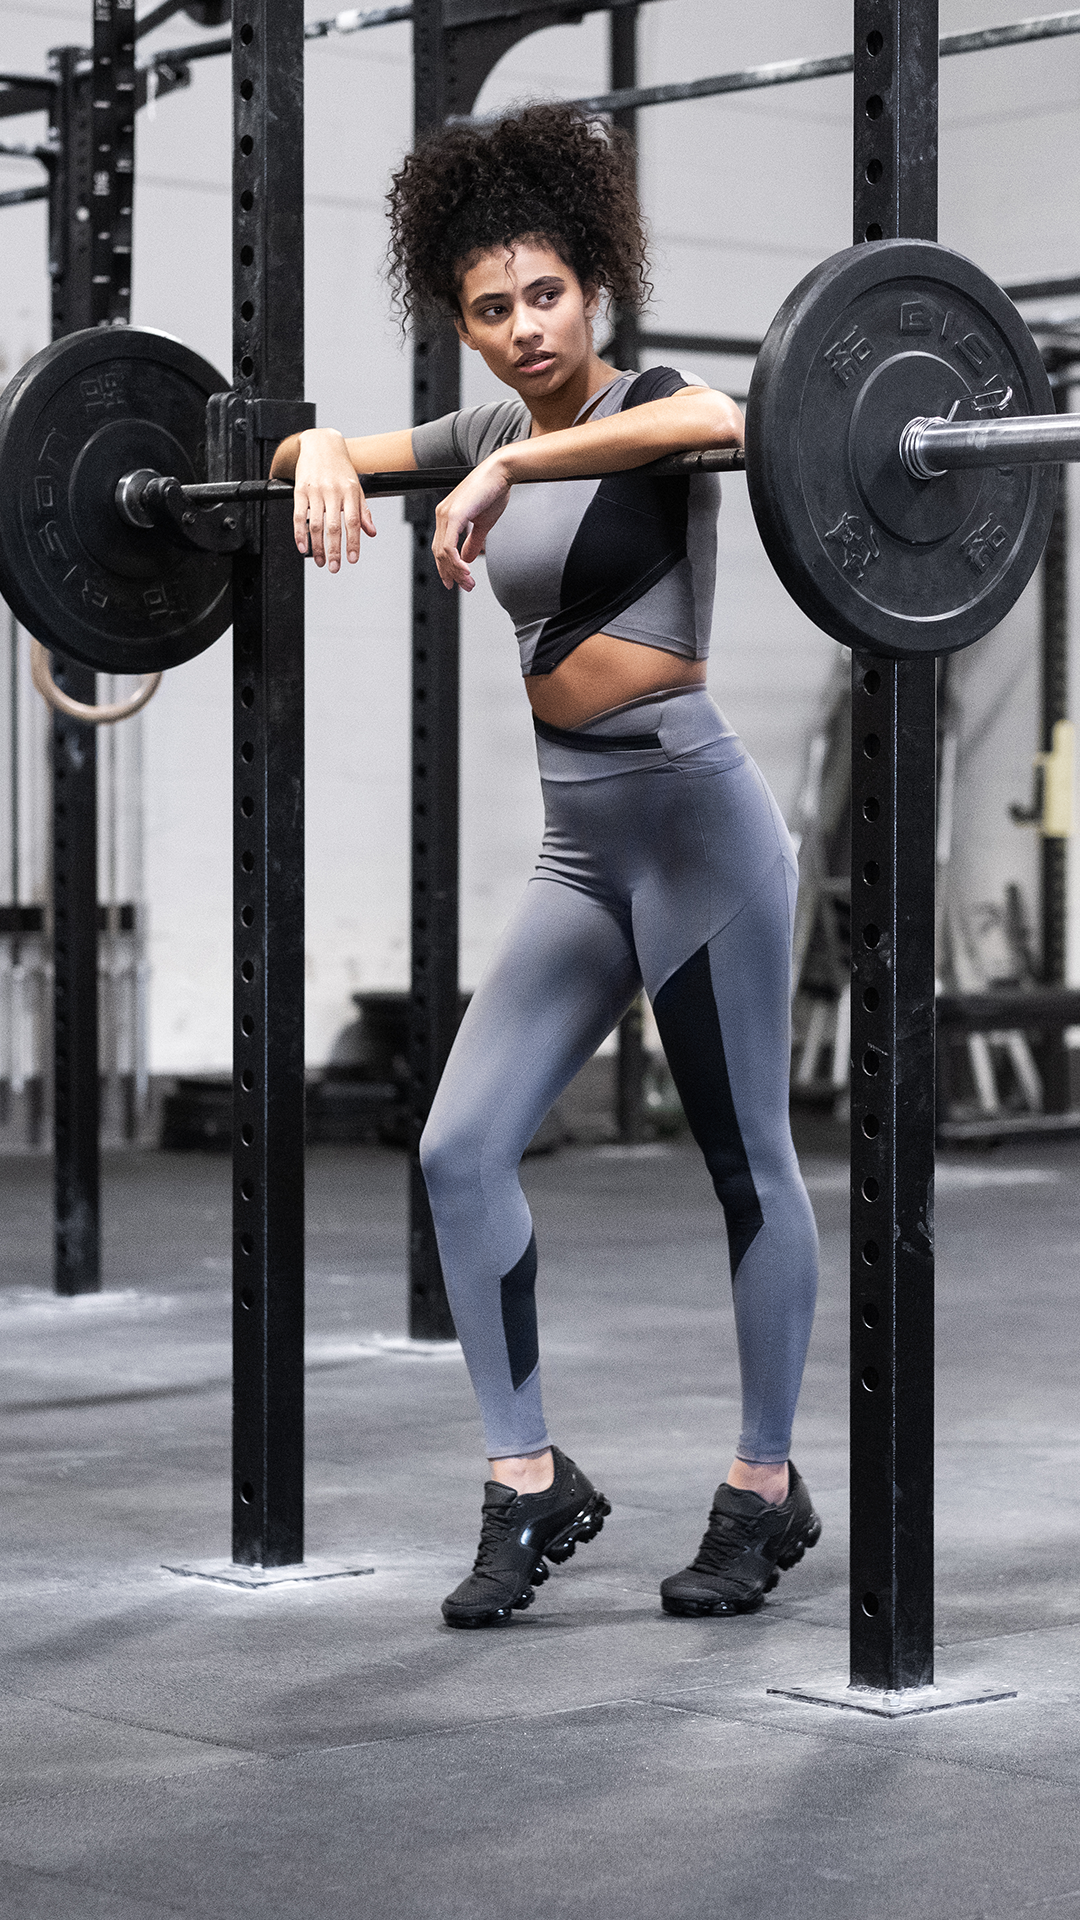 a706fa8f12fb1 Asymmetric aspirations, wearing the Asymmetric Crop Top and Leggings in  Smokey Grey/ Black. #Gymshark #Gym #Sweat #Train #Perform #Seamless # Exercise ...